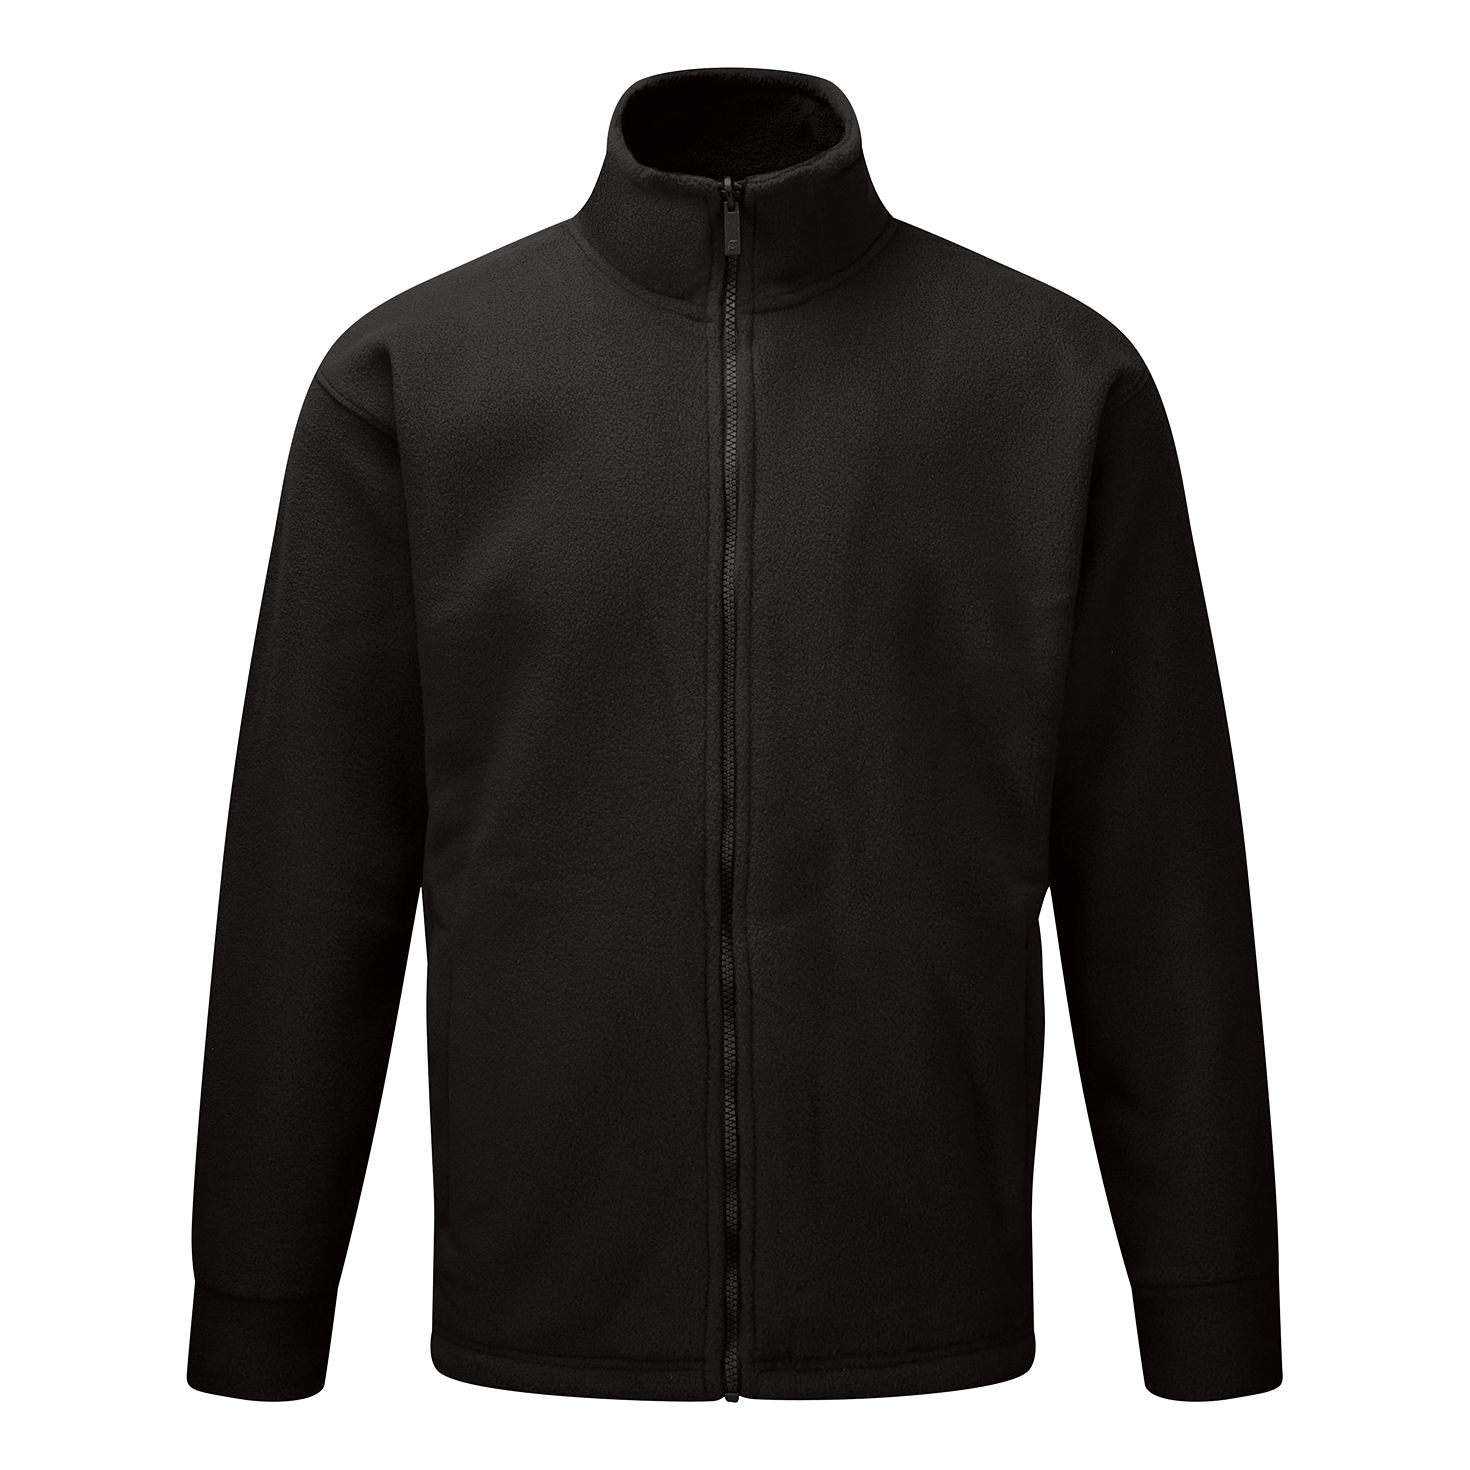 ST Basic Fleece Jacket Elasticated Cuffs and Full Zip Front XXXXLarge Blk Ref 59077 *Approx 3 Day L/Time*